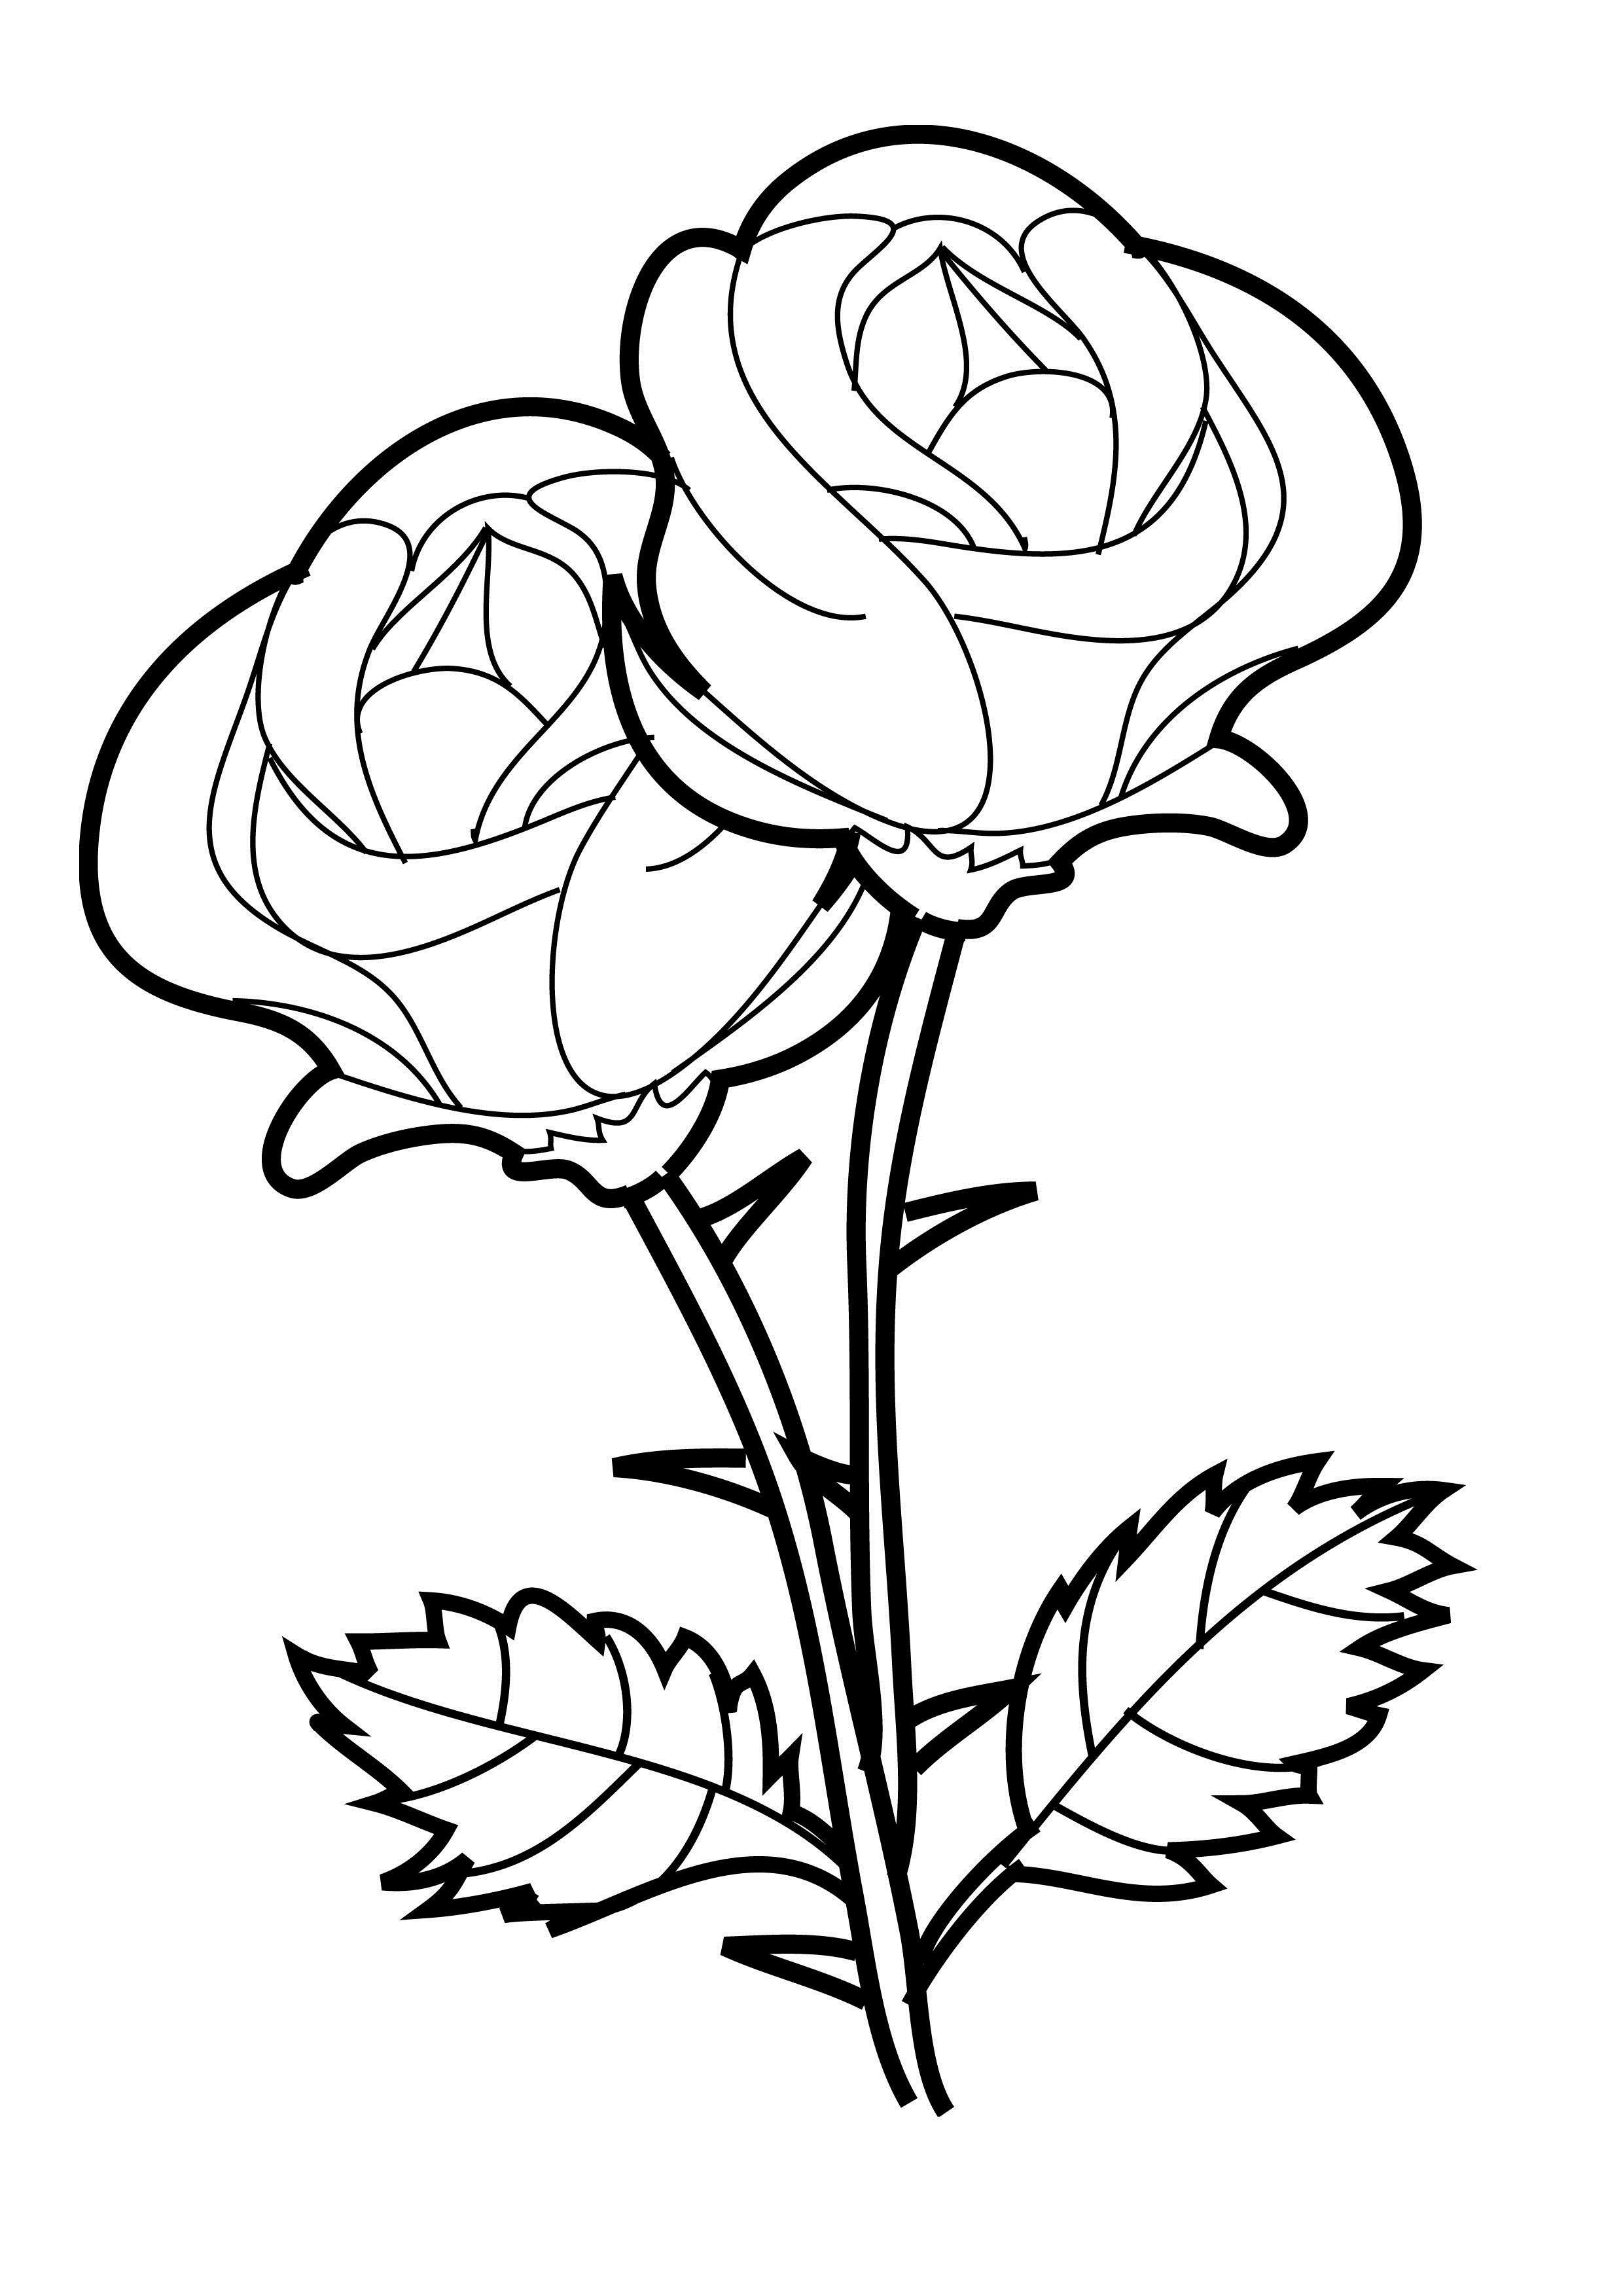 Free clipart rose with thornes coloring page vector free Flower Coloring Pages | Crosses | Rose coloring pages, Printable ... vector free